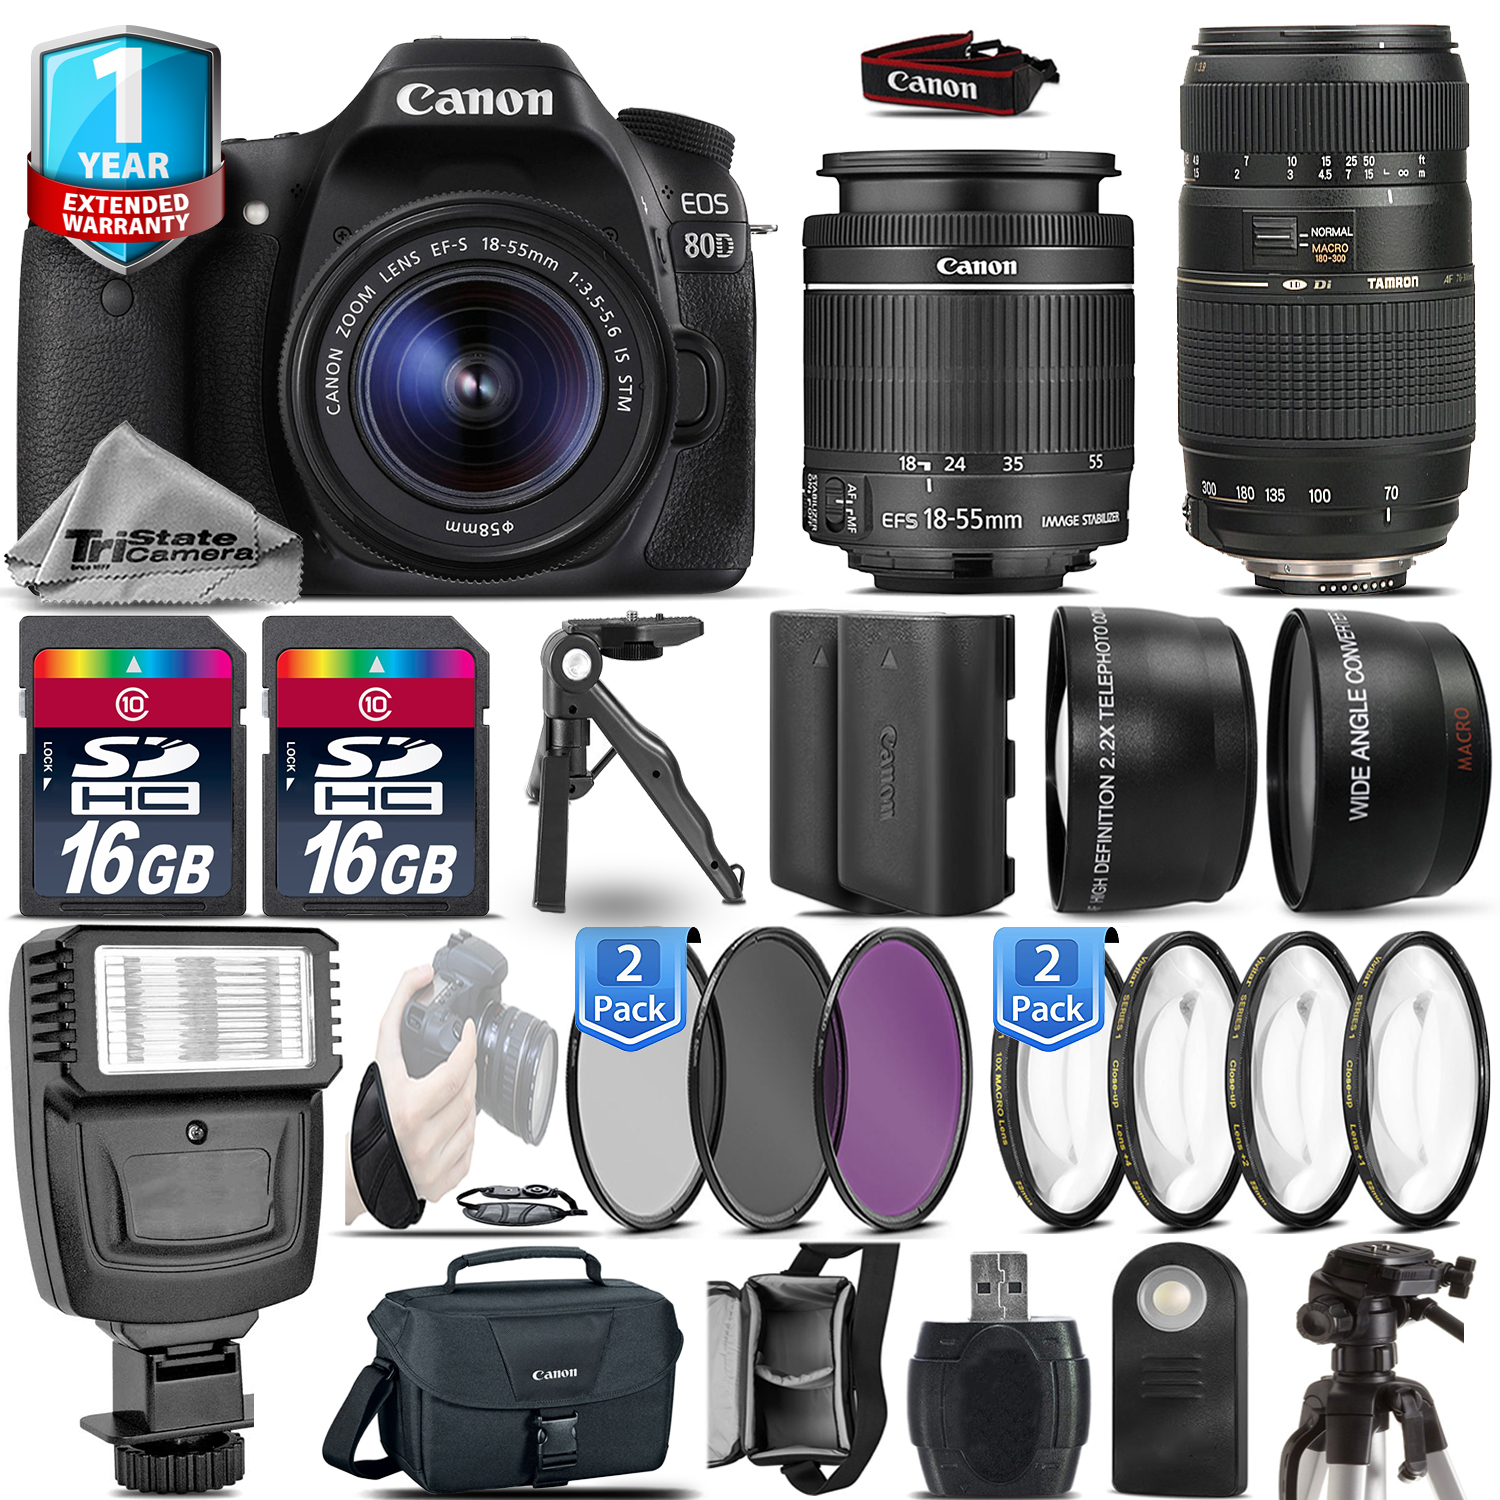 EOS 80D DSLR Camera + 18-55mm IS + 70-300mm + Extra Battery + 1yr Warranty *FREE SHIPPING*